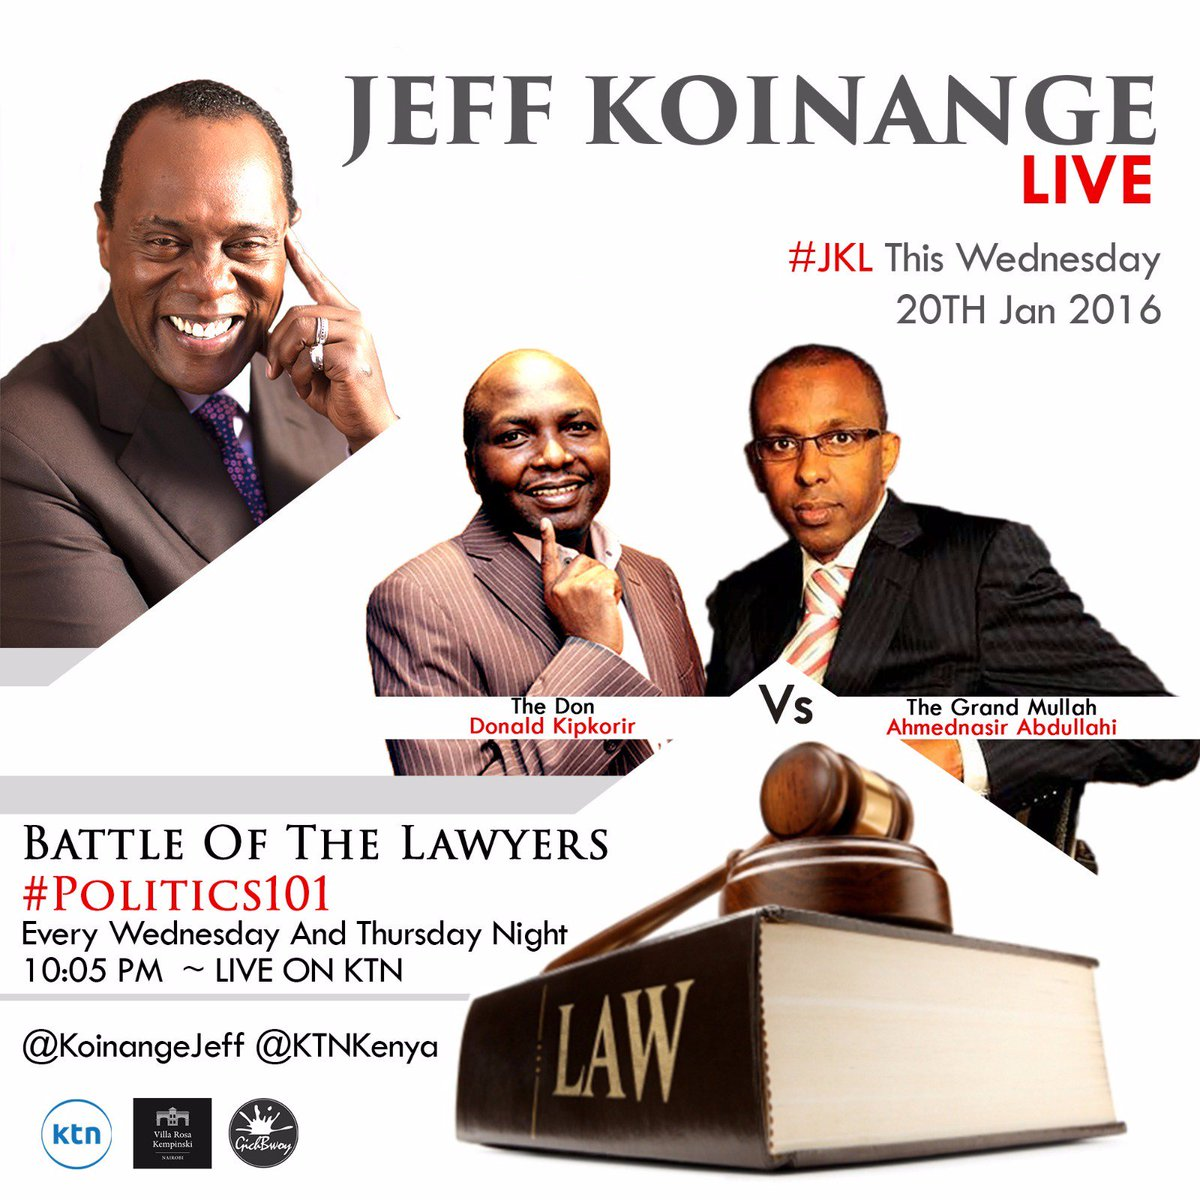 Are you ready for this? Spread THE WORD!!! cc @ahmednasirlaw @DBK017 https://t.co/lfLH9lwv4m